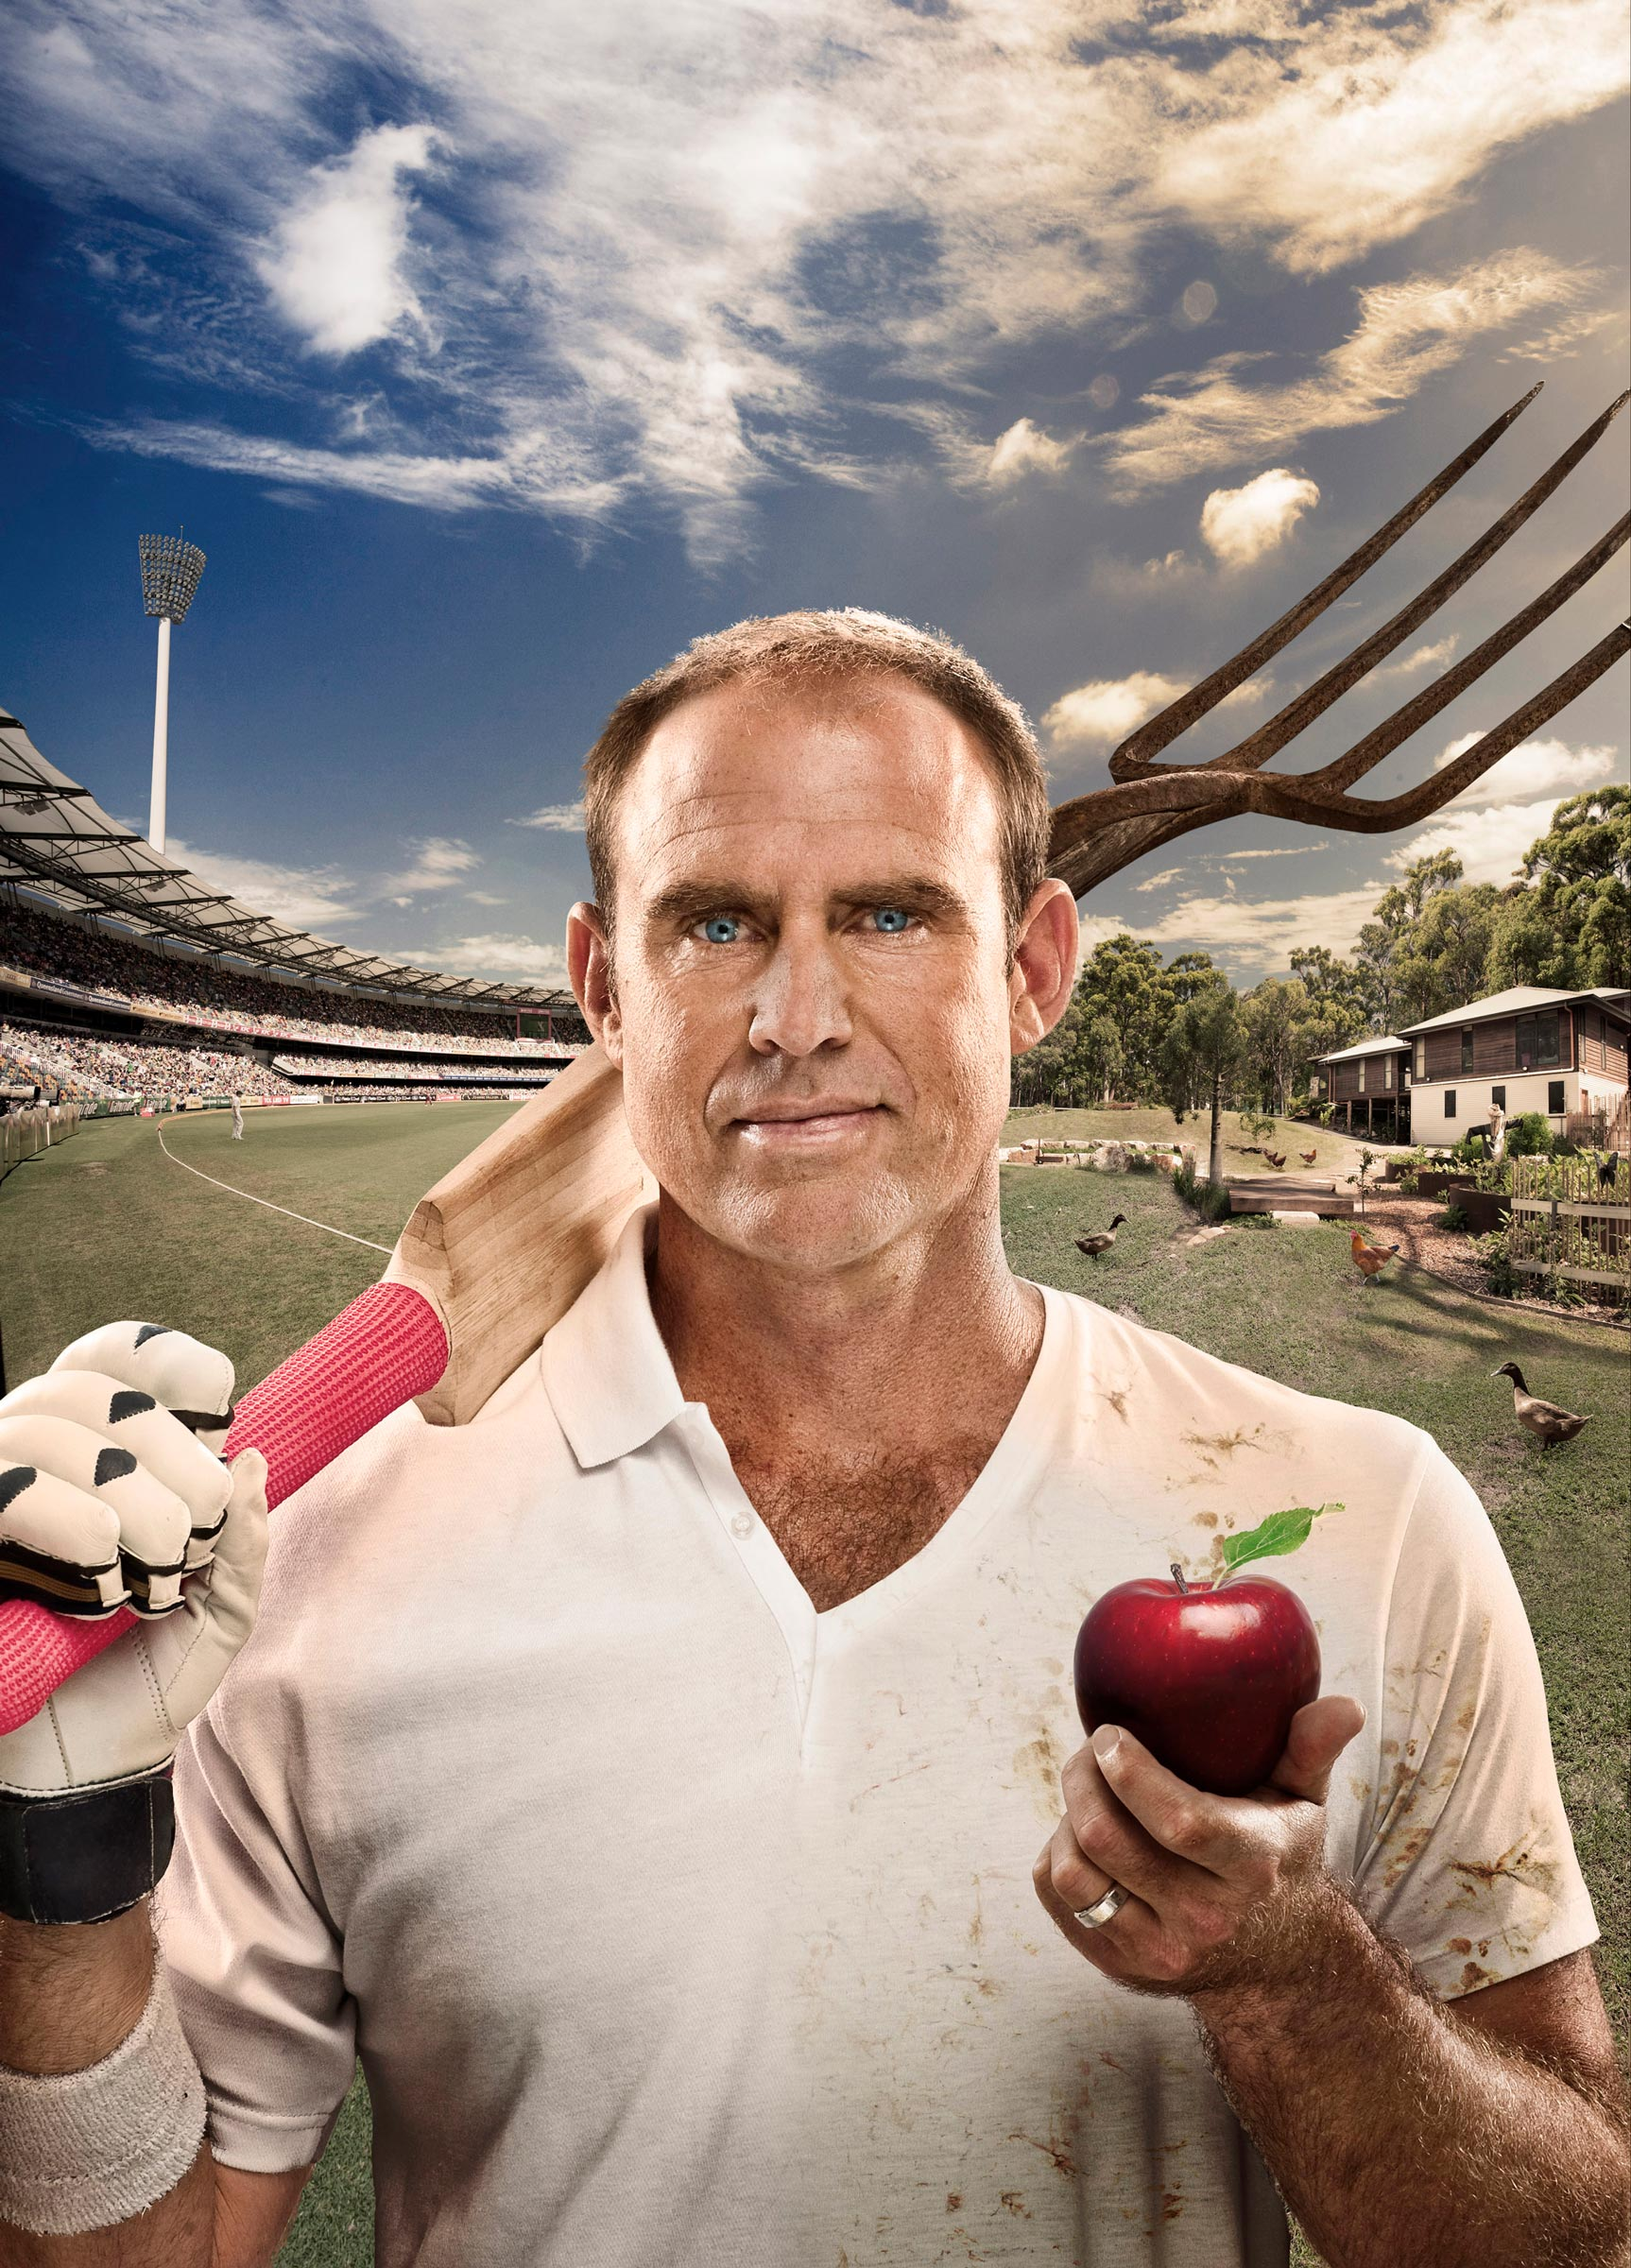 matthew hayden holding cricket bat and apple with cricket ground and farm in background